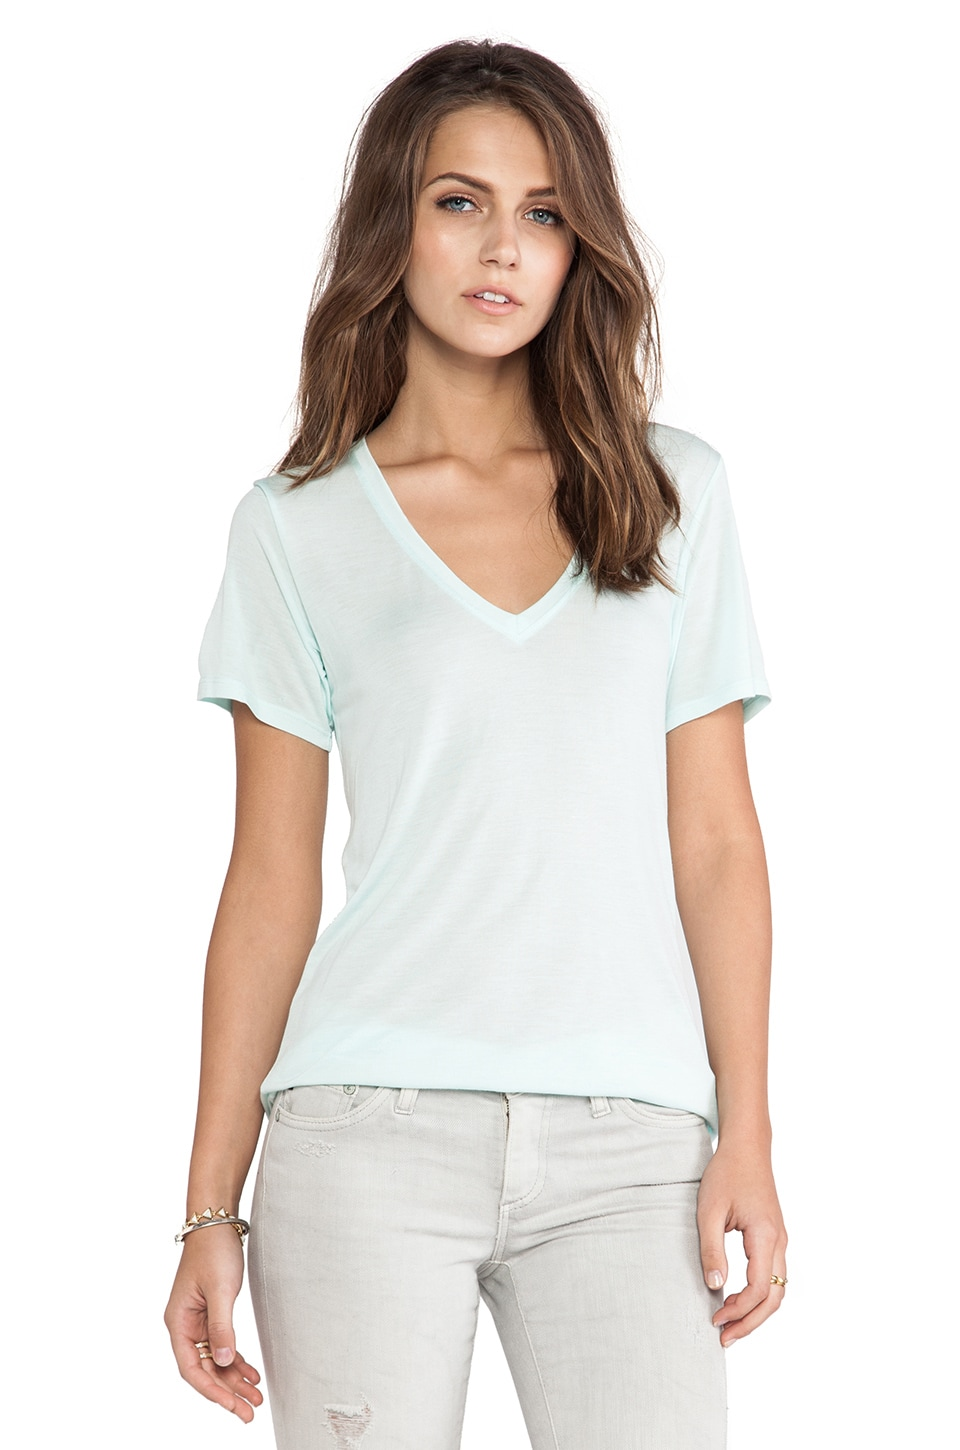 AG Adriano Goldschmied Wren Tee in Faded Jade